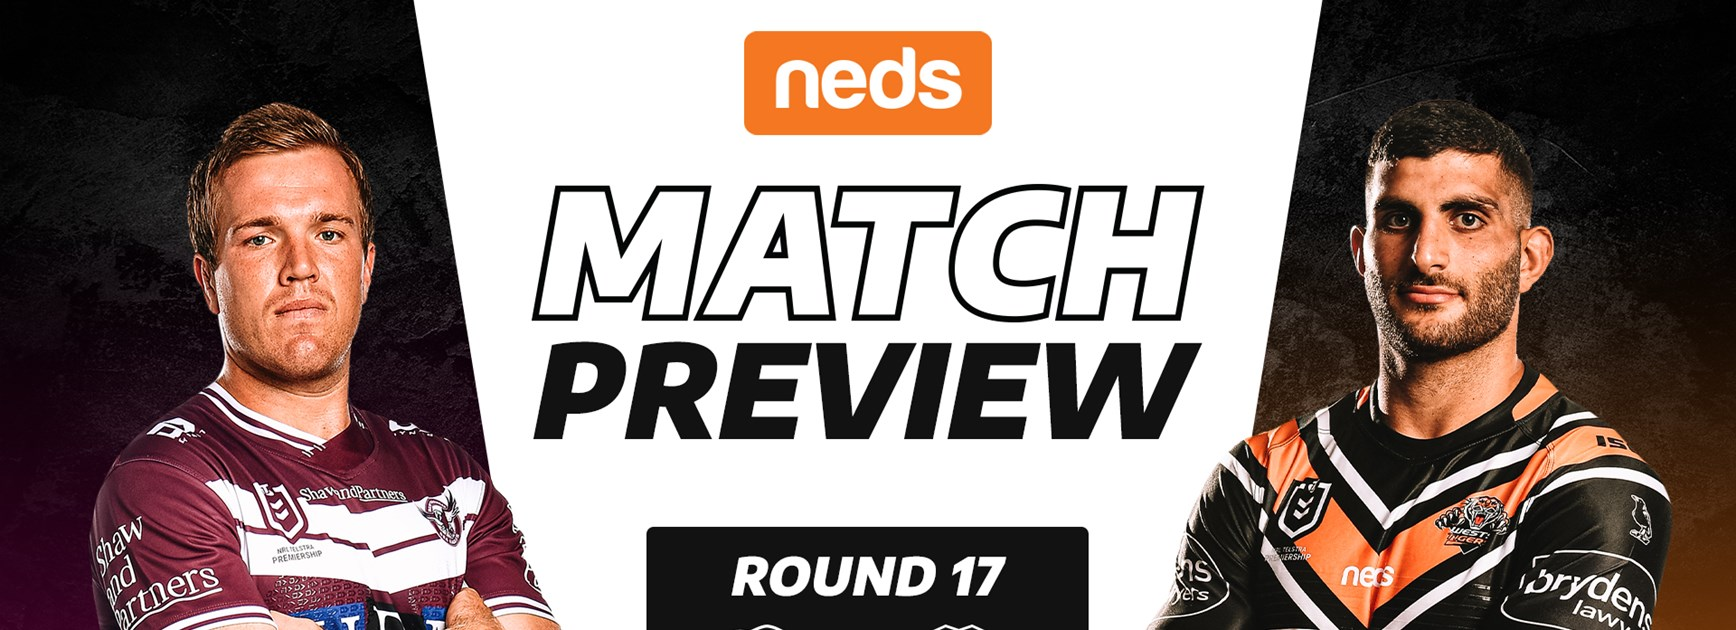 Neds Match Preview: Round 17